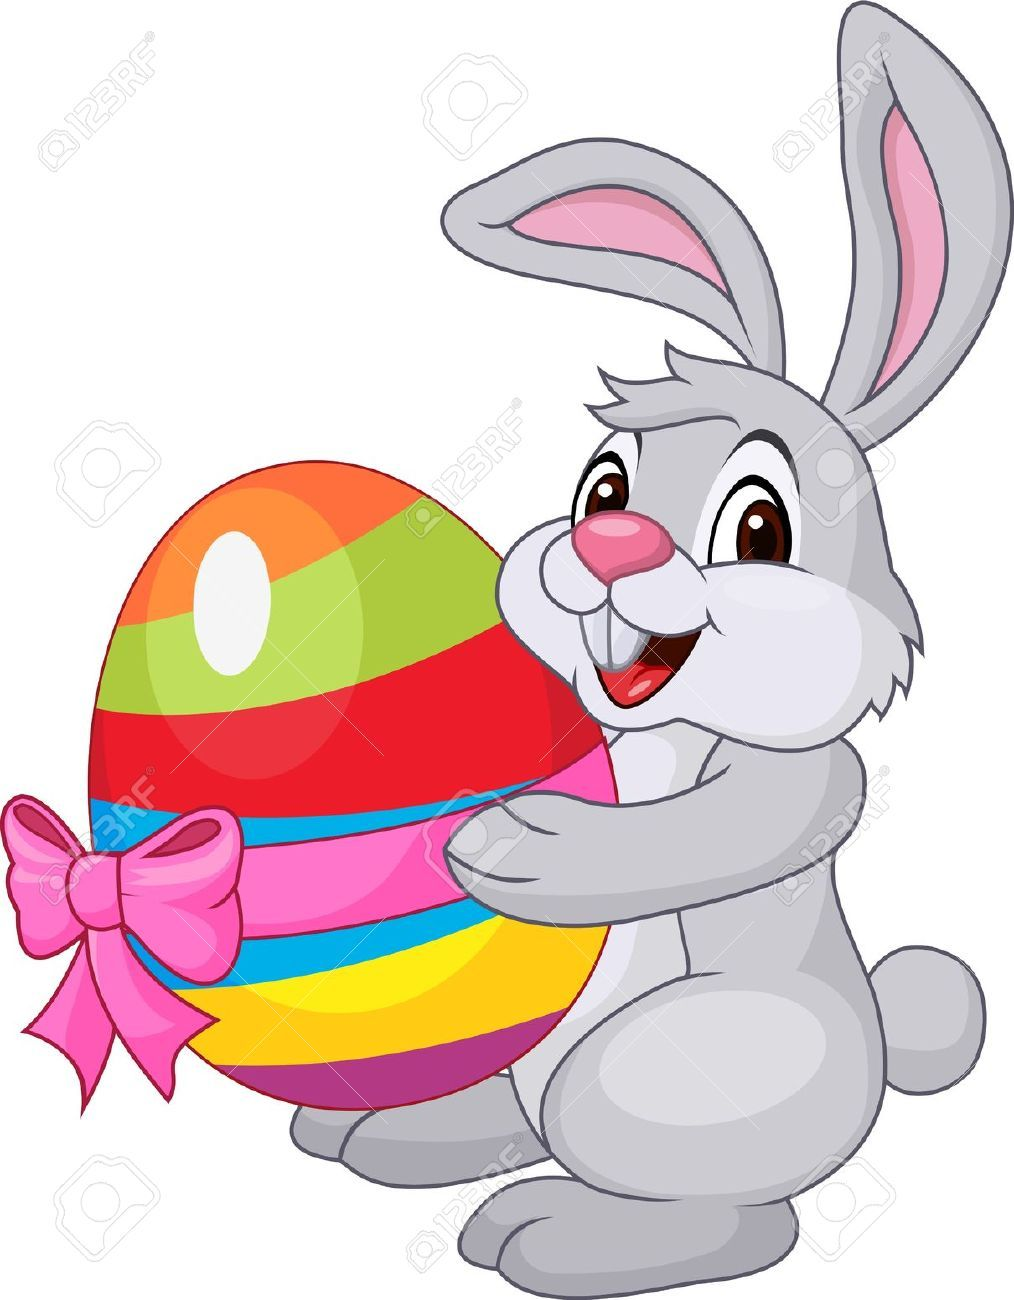 Happy Easter Bunny Images Eggs Pictures Hd Wallpapers For Friends Easter Bunny Images Easter Bunny Cartoon Easter Bunny Pictures